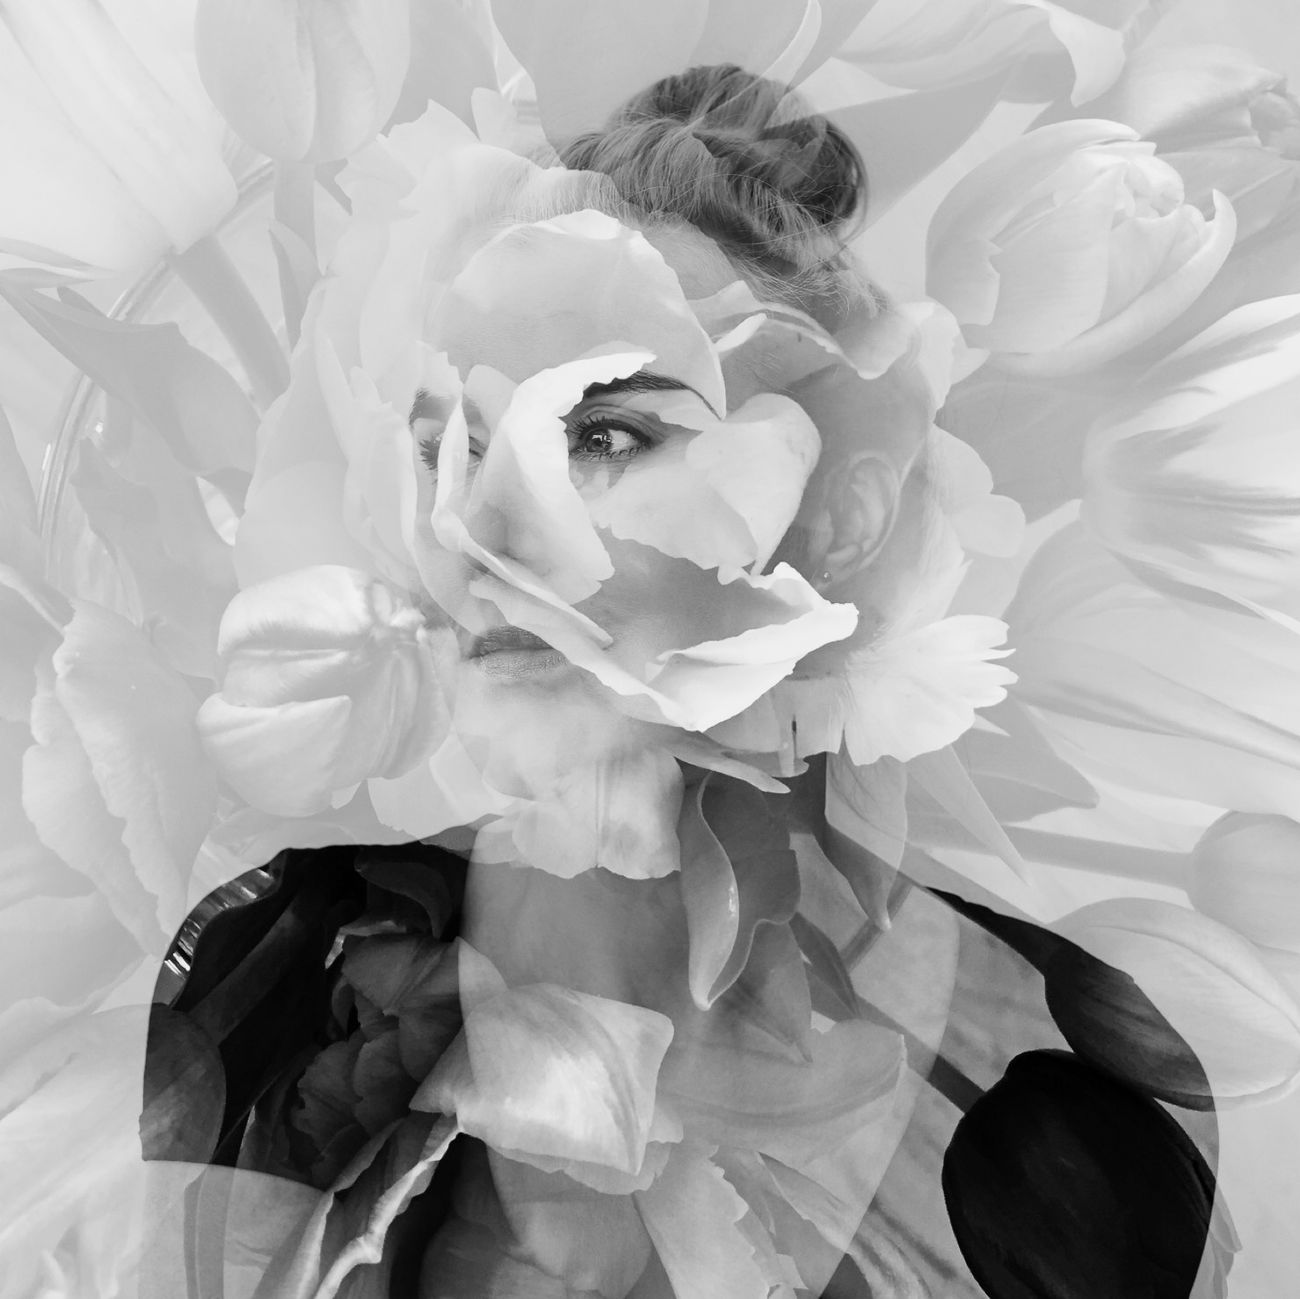 AMPt_community Selfportrait NEM Self Portrait NEM Black&white Flowers Bw_collection Shootermag Tulips NEM ImpossibleHumans